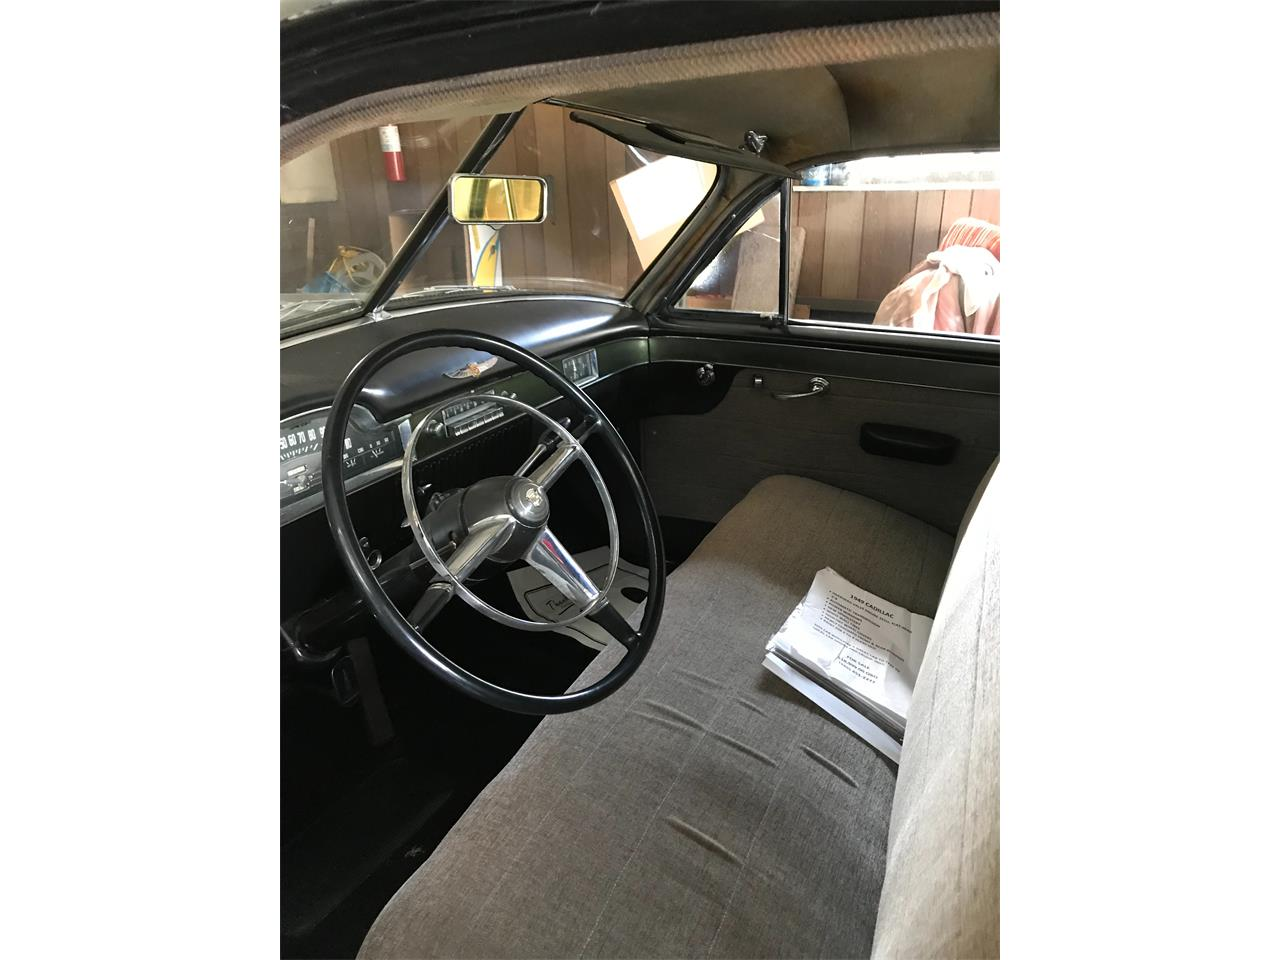 1949 Cadillac 4-Dr Sedan (CC-1226713) for sale in Land O Lakes, Florida